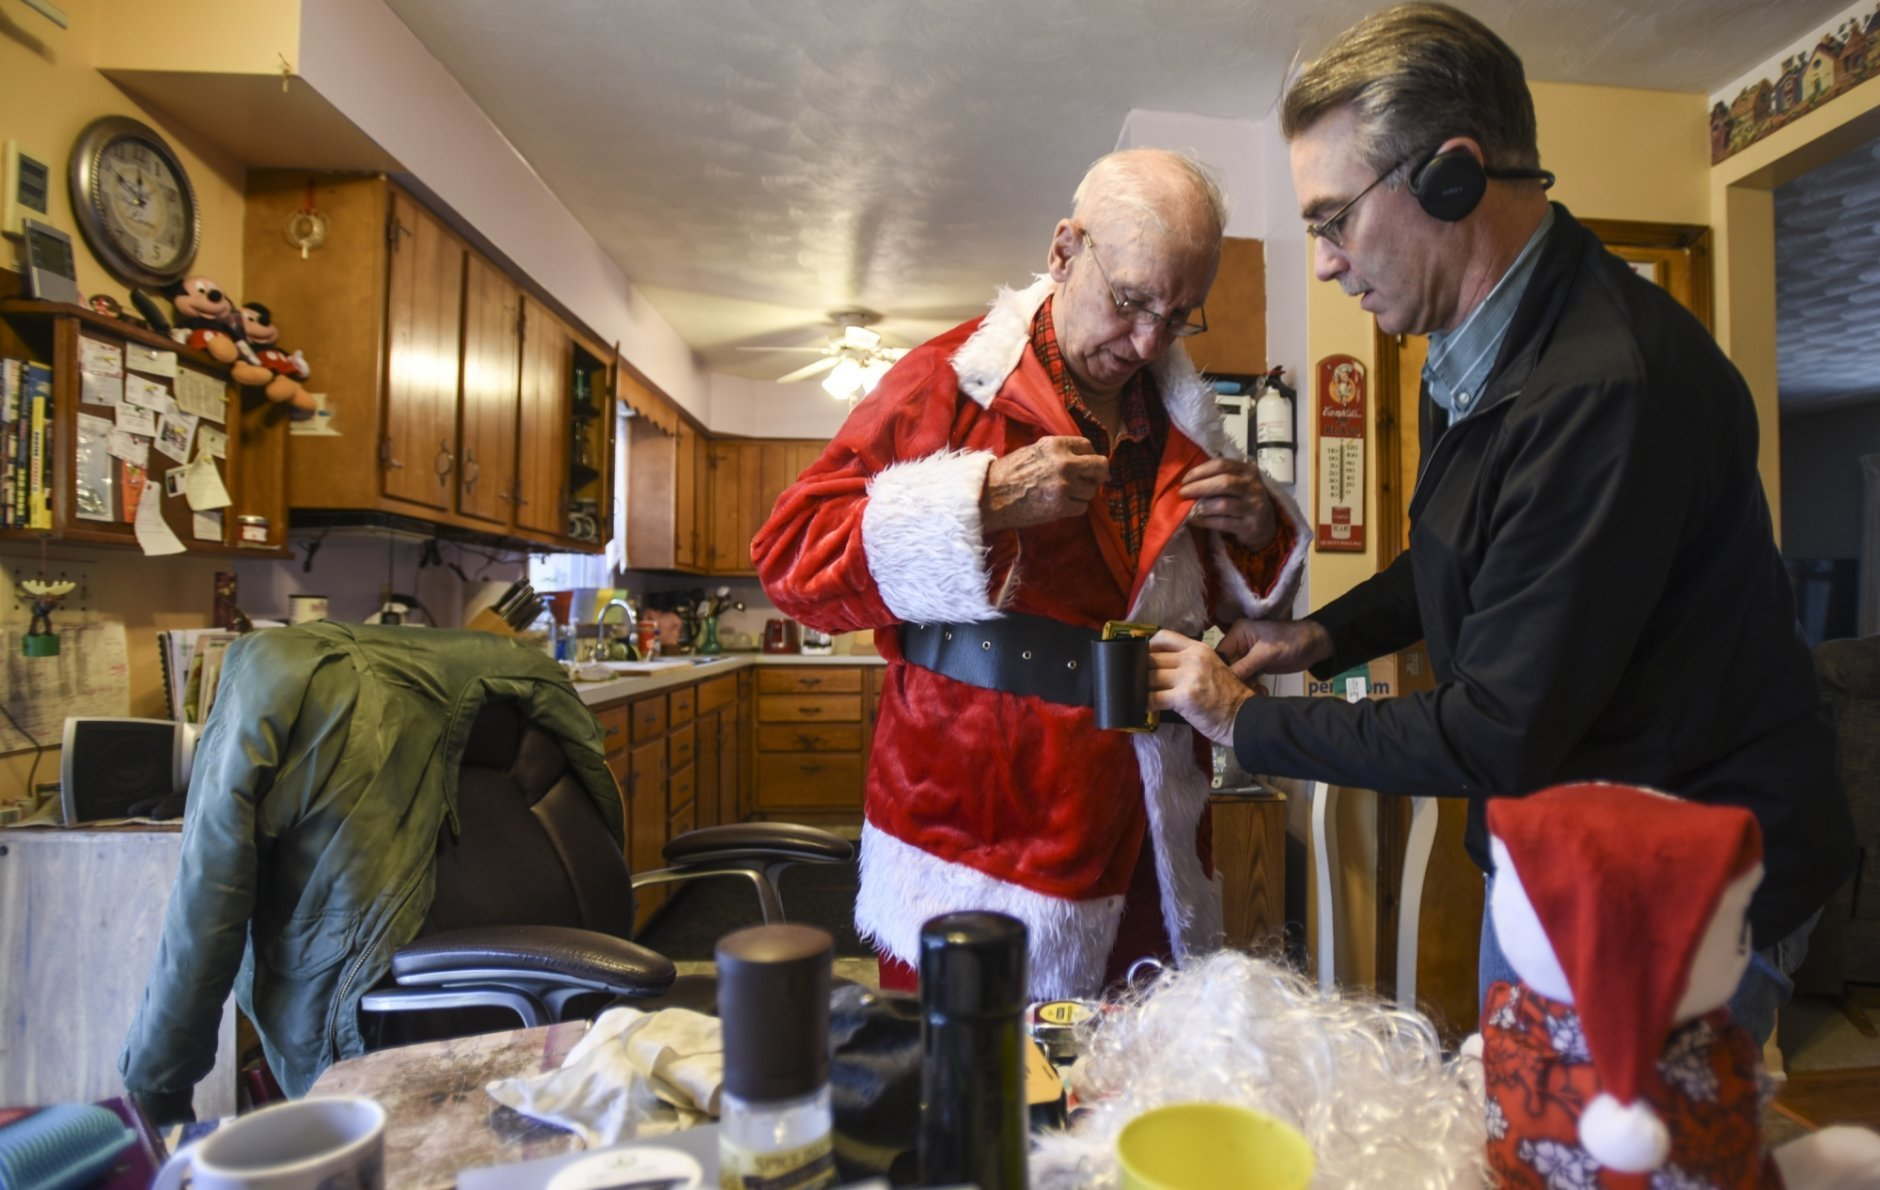 In this Saturday, Dec. 8, 2018 photo, Dana West, right, helps his 90-year-old father Don into his Santa suit in Eaton Rapids, Mich. Don is headed to a Charlotte adult foster care home to visit Jackie, his wife of 64 years. (Matthew Dae Smith/Lansing State Journal via AP)